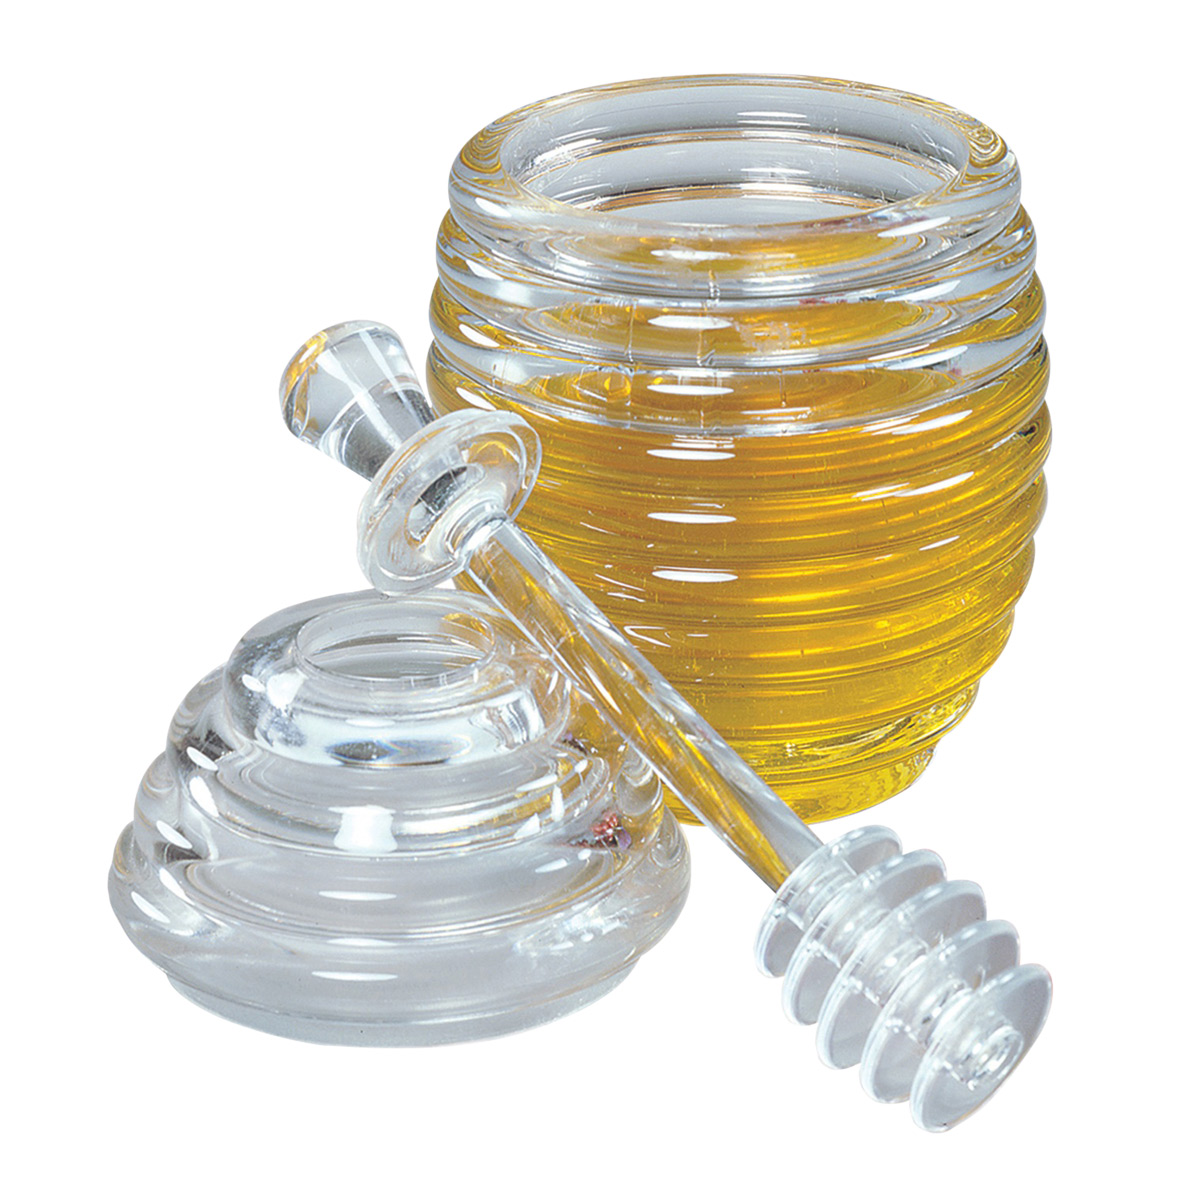 Honey Jar with Lid